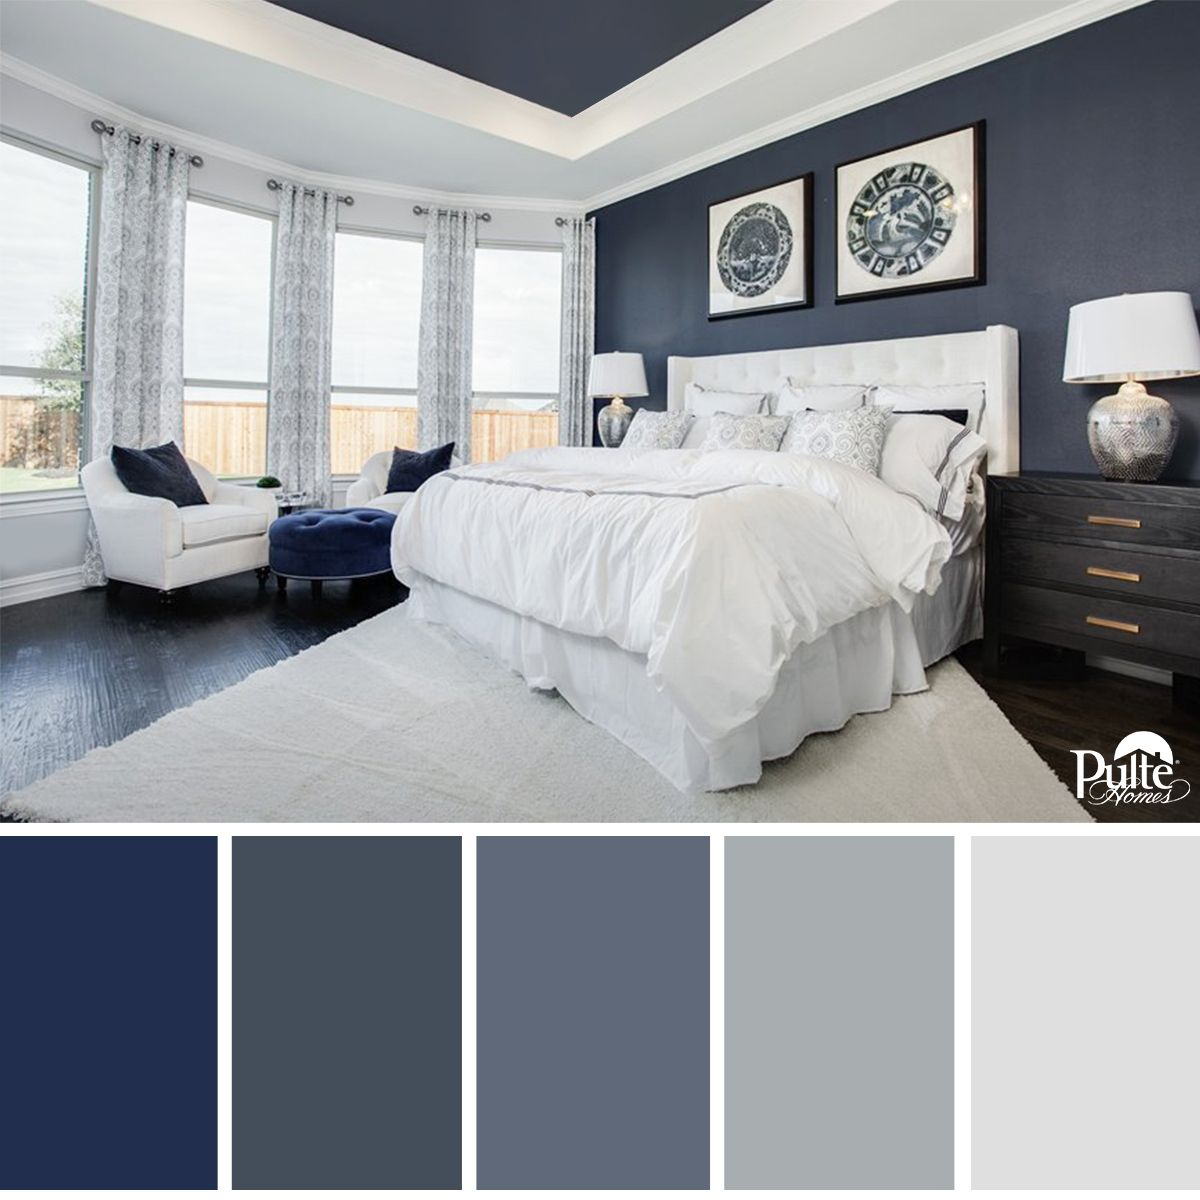 Interior Colorful Master Bedroom Ideas this bedroom design has the right idea rich blue color palette and decor create